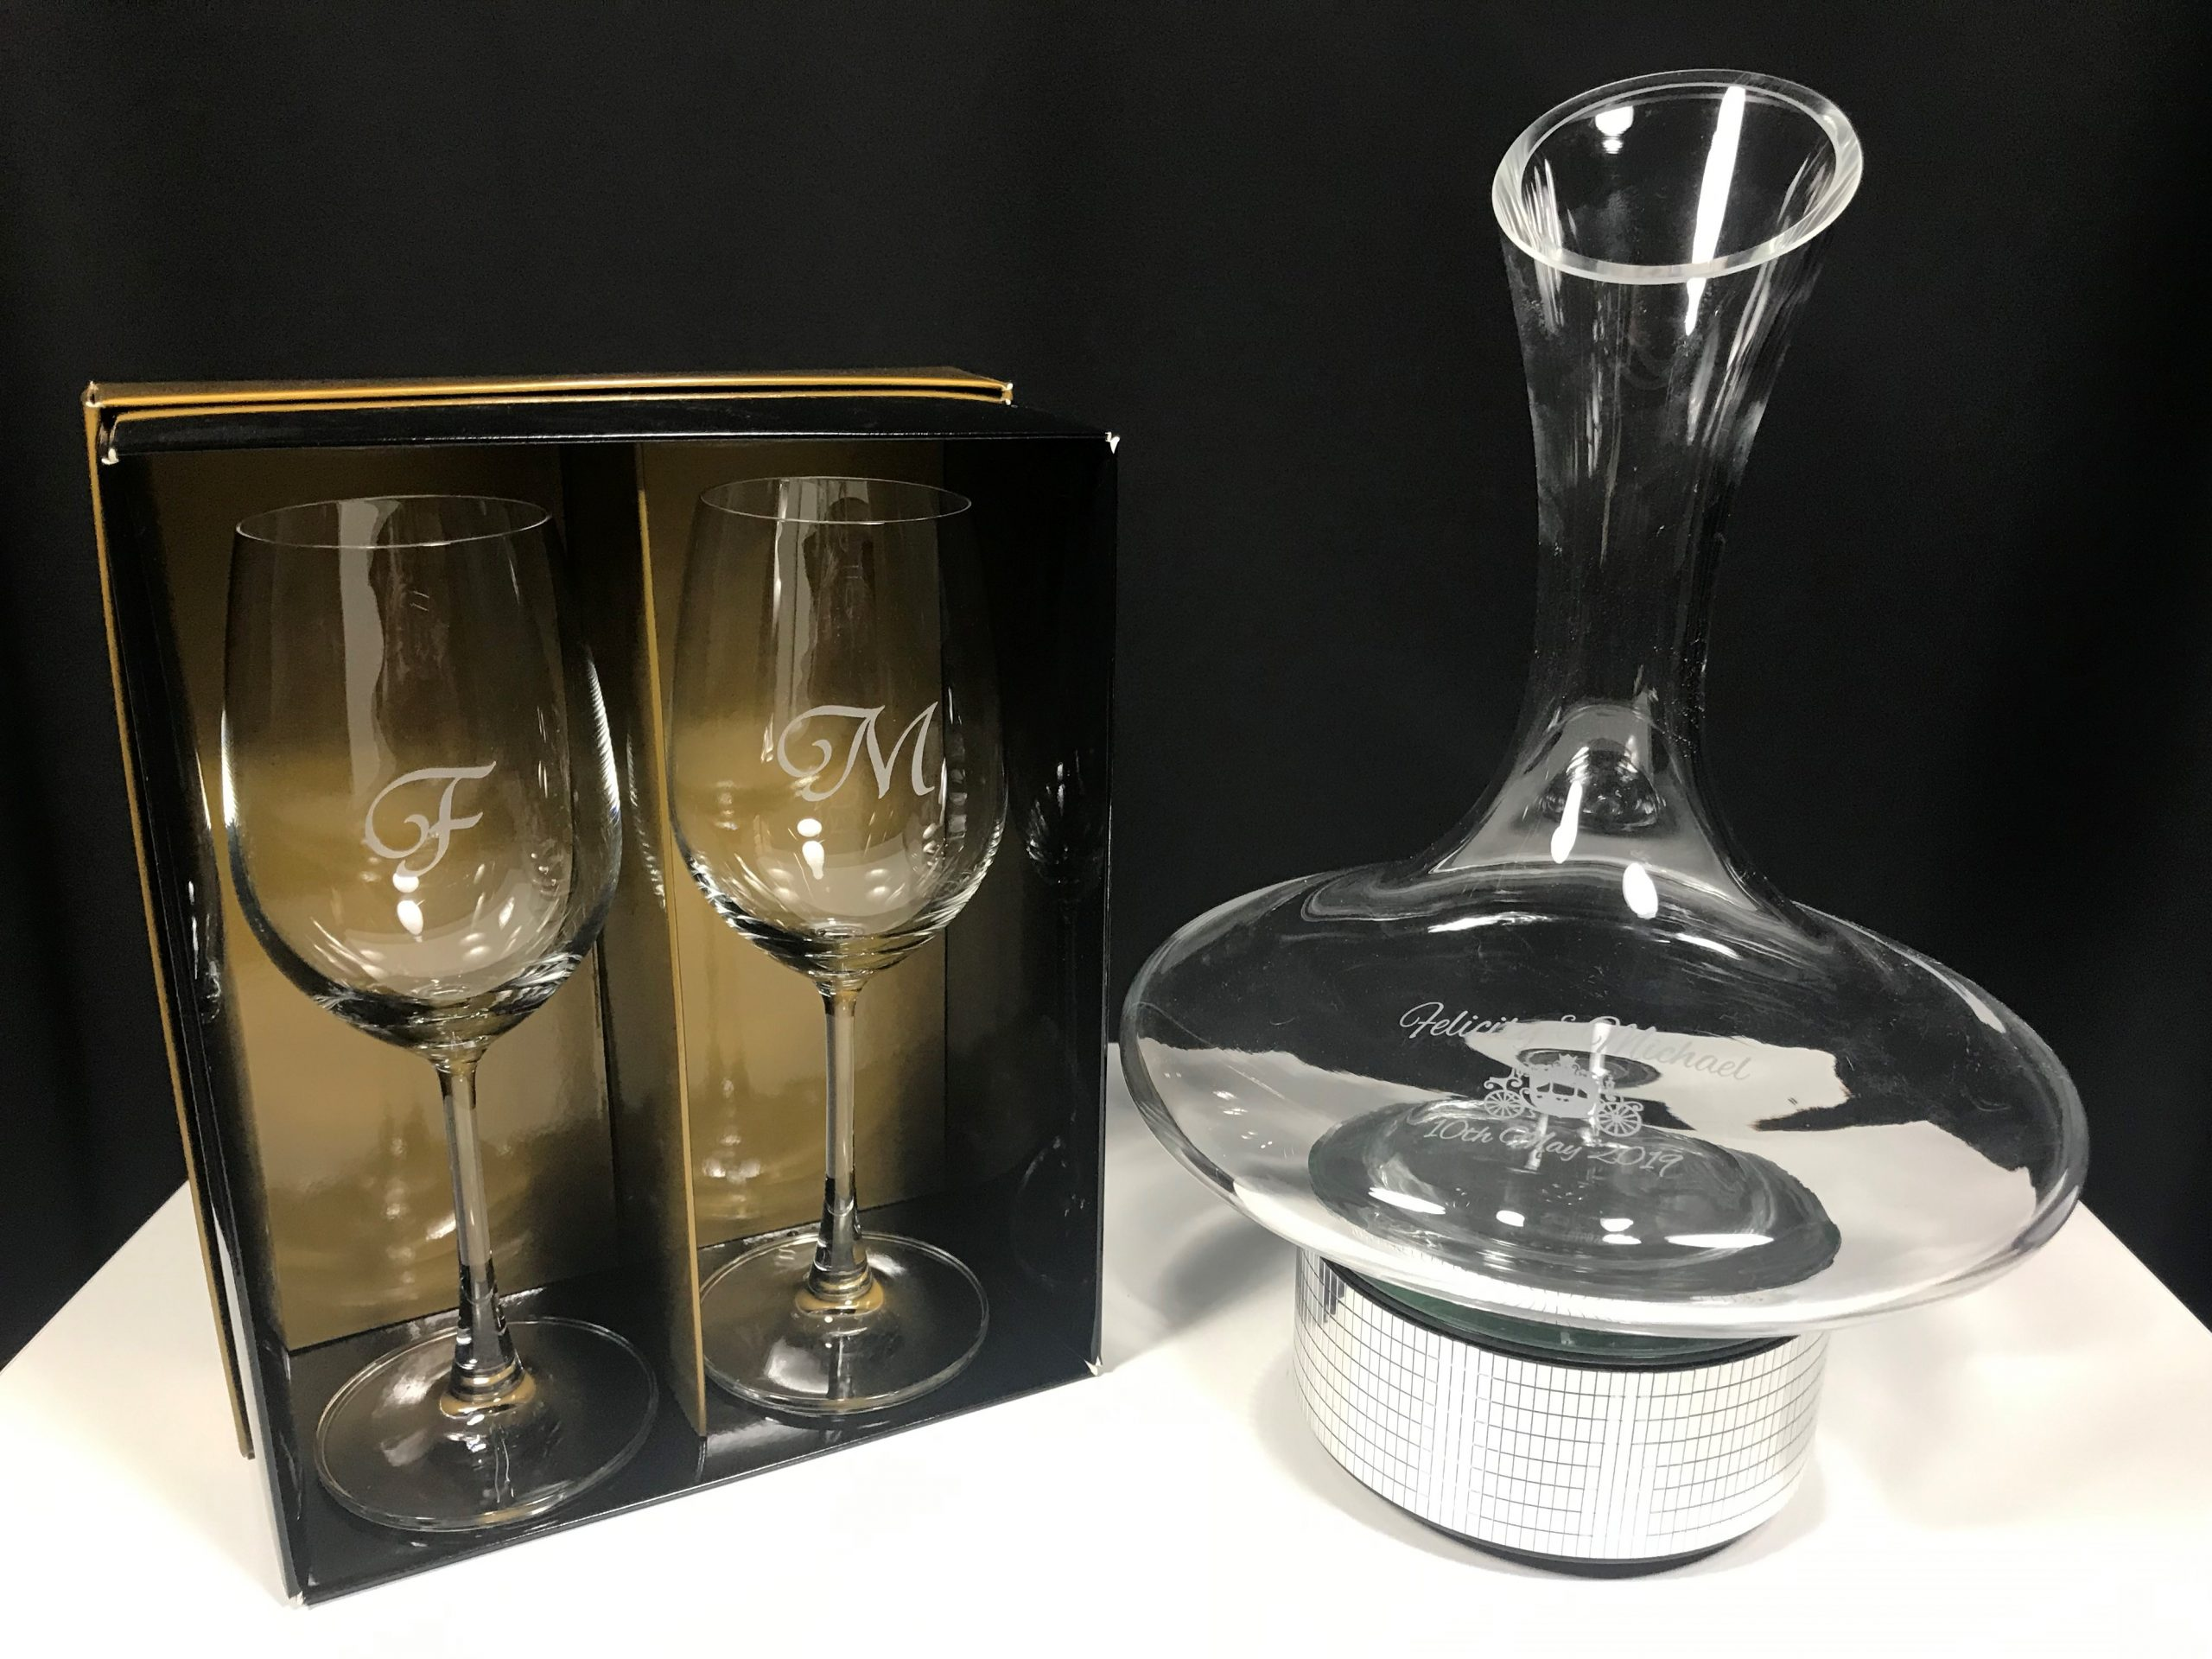 Wine Decanter With 2 Wine Glasses Groovy Glass